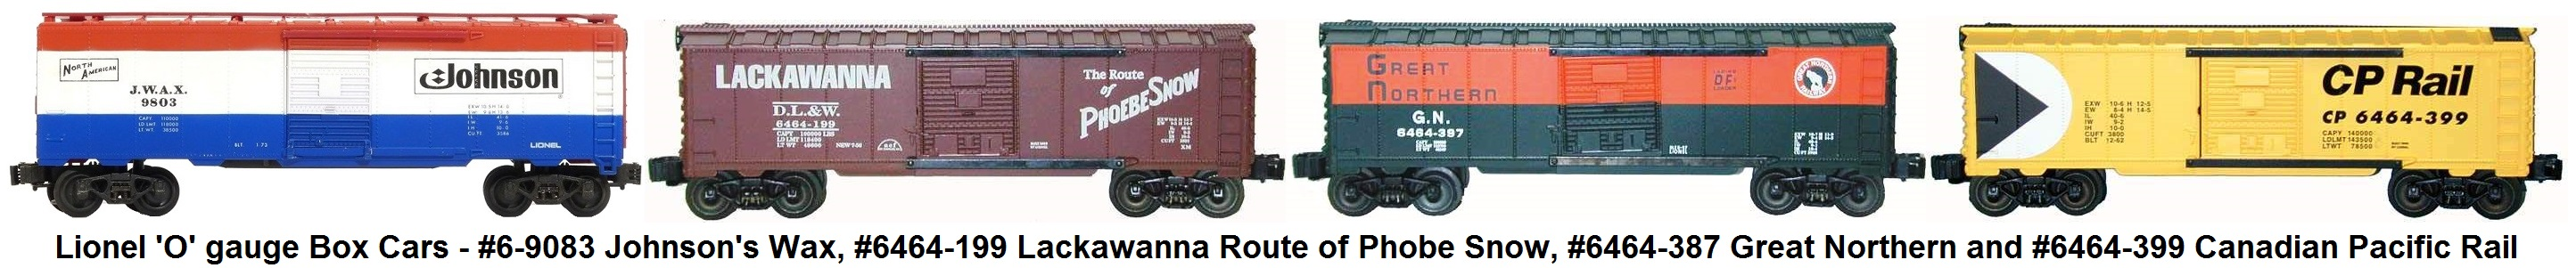 Lionel 'O' gauge #6-9083 Johnson's Wax, #6464-199 Lackawanna Route of Phoebe Snow, #6464-387 Great Northern and #6464-399 Canadian Pacific Rail Box Cars